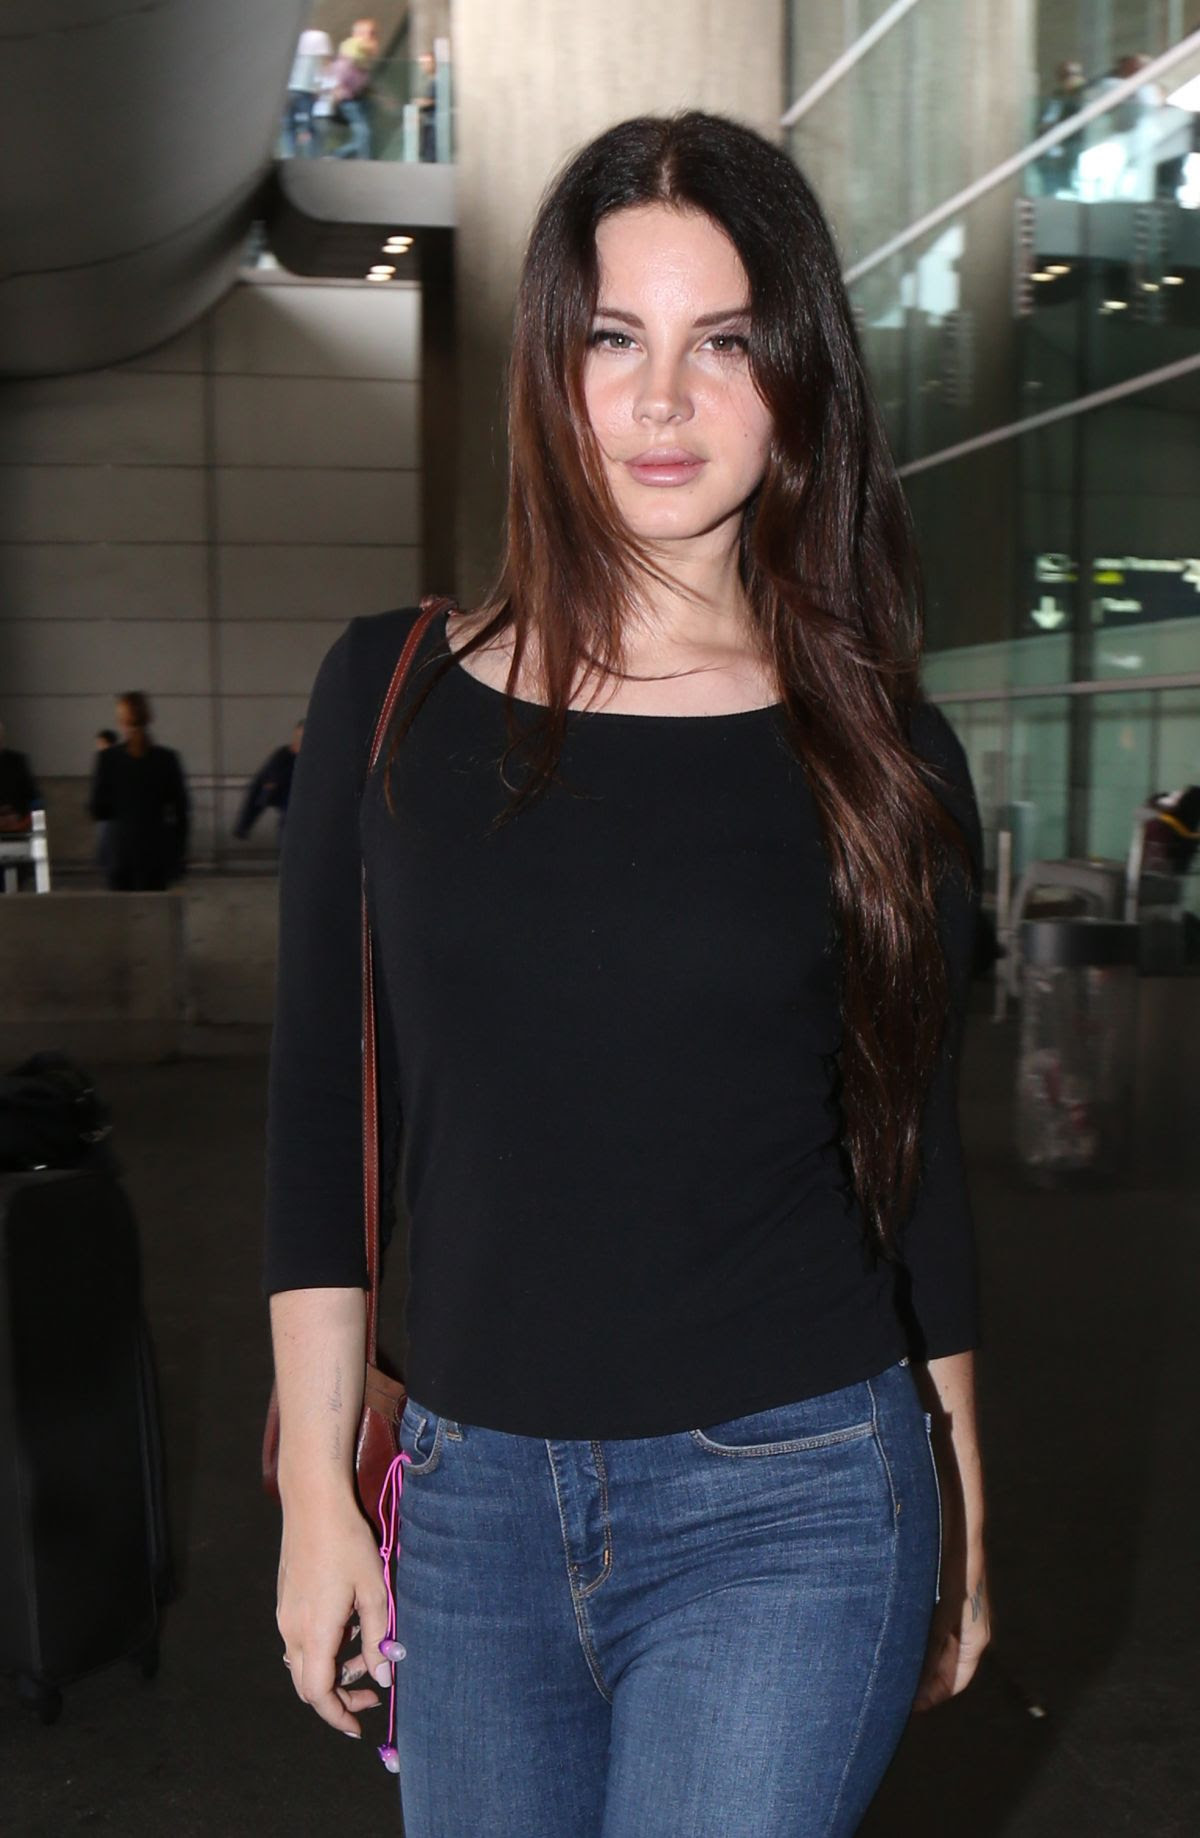 LANA DEL REY at Charles De Gaulle Airport in Paris 07/22/2017